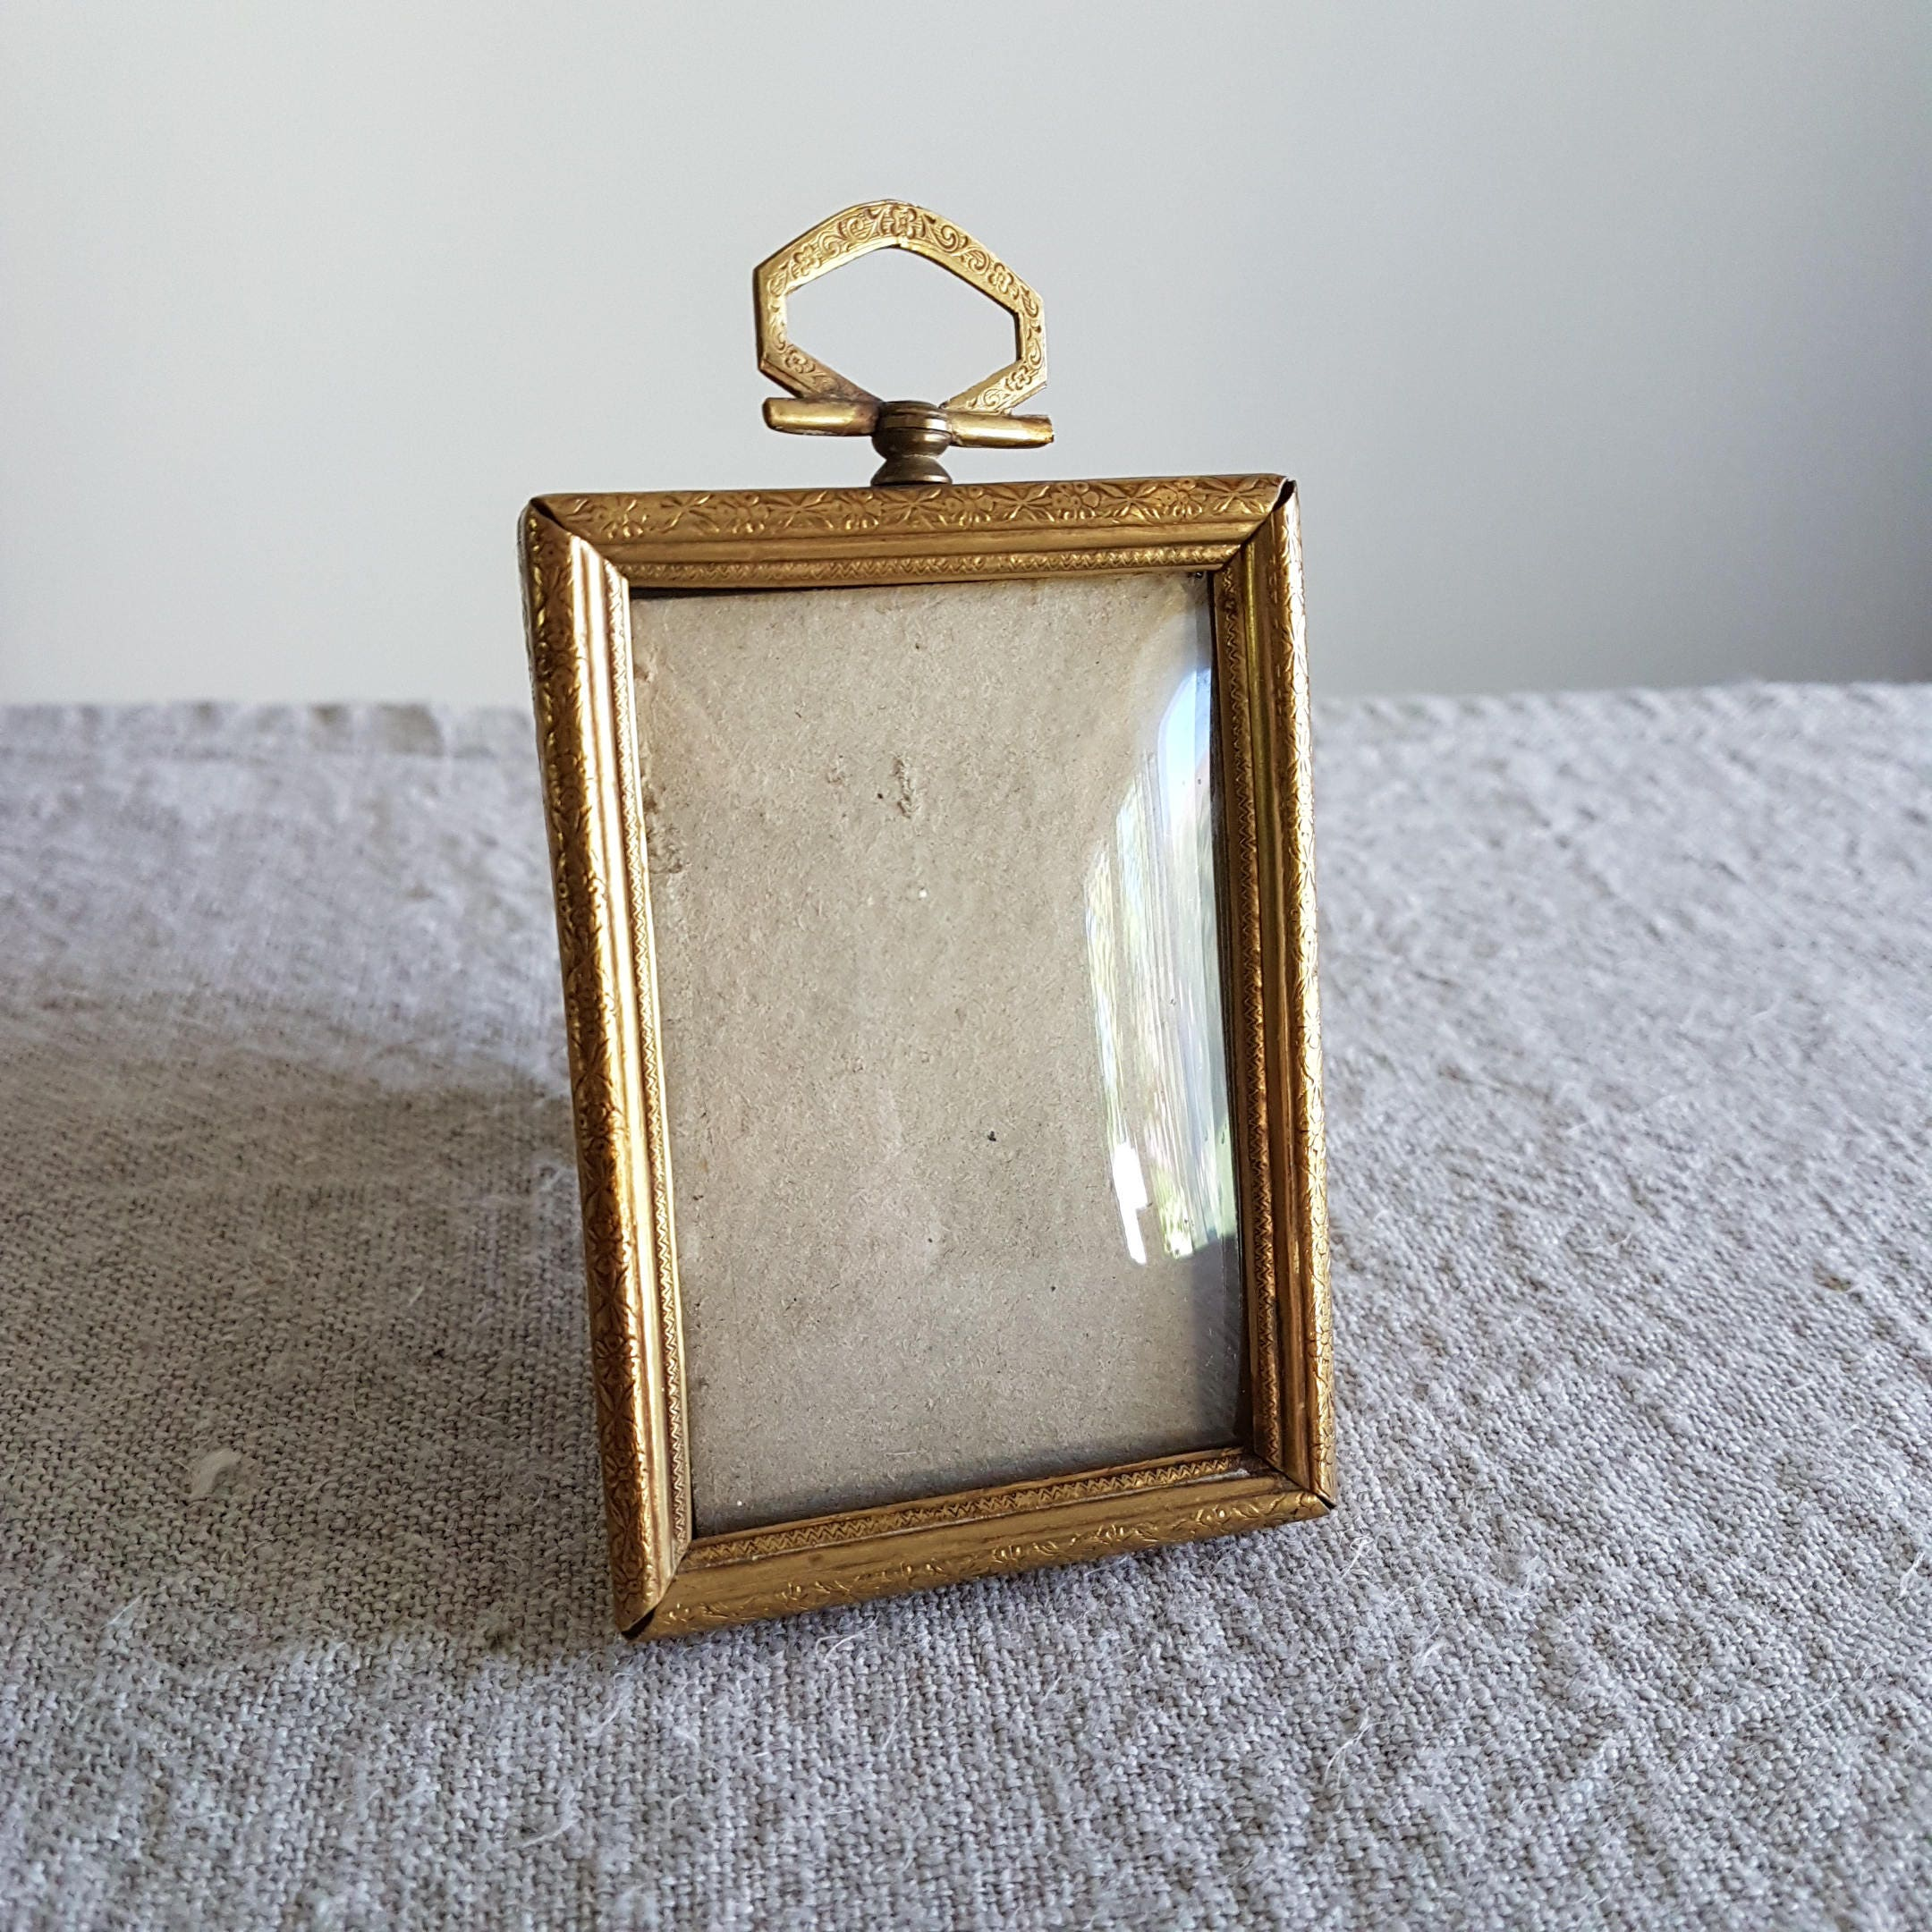 2 14 x 3 38 picture frame in gold metal w dome convex sold by bluechickenvintage jeuxipadfo Images